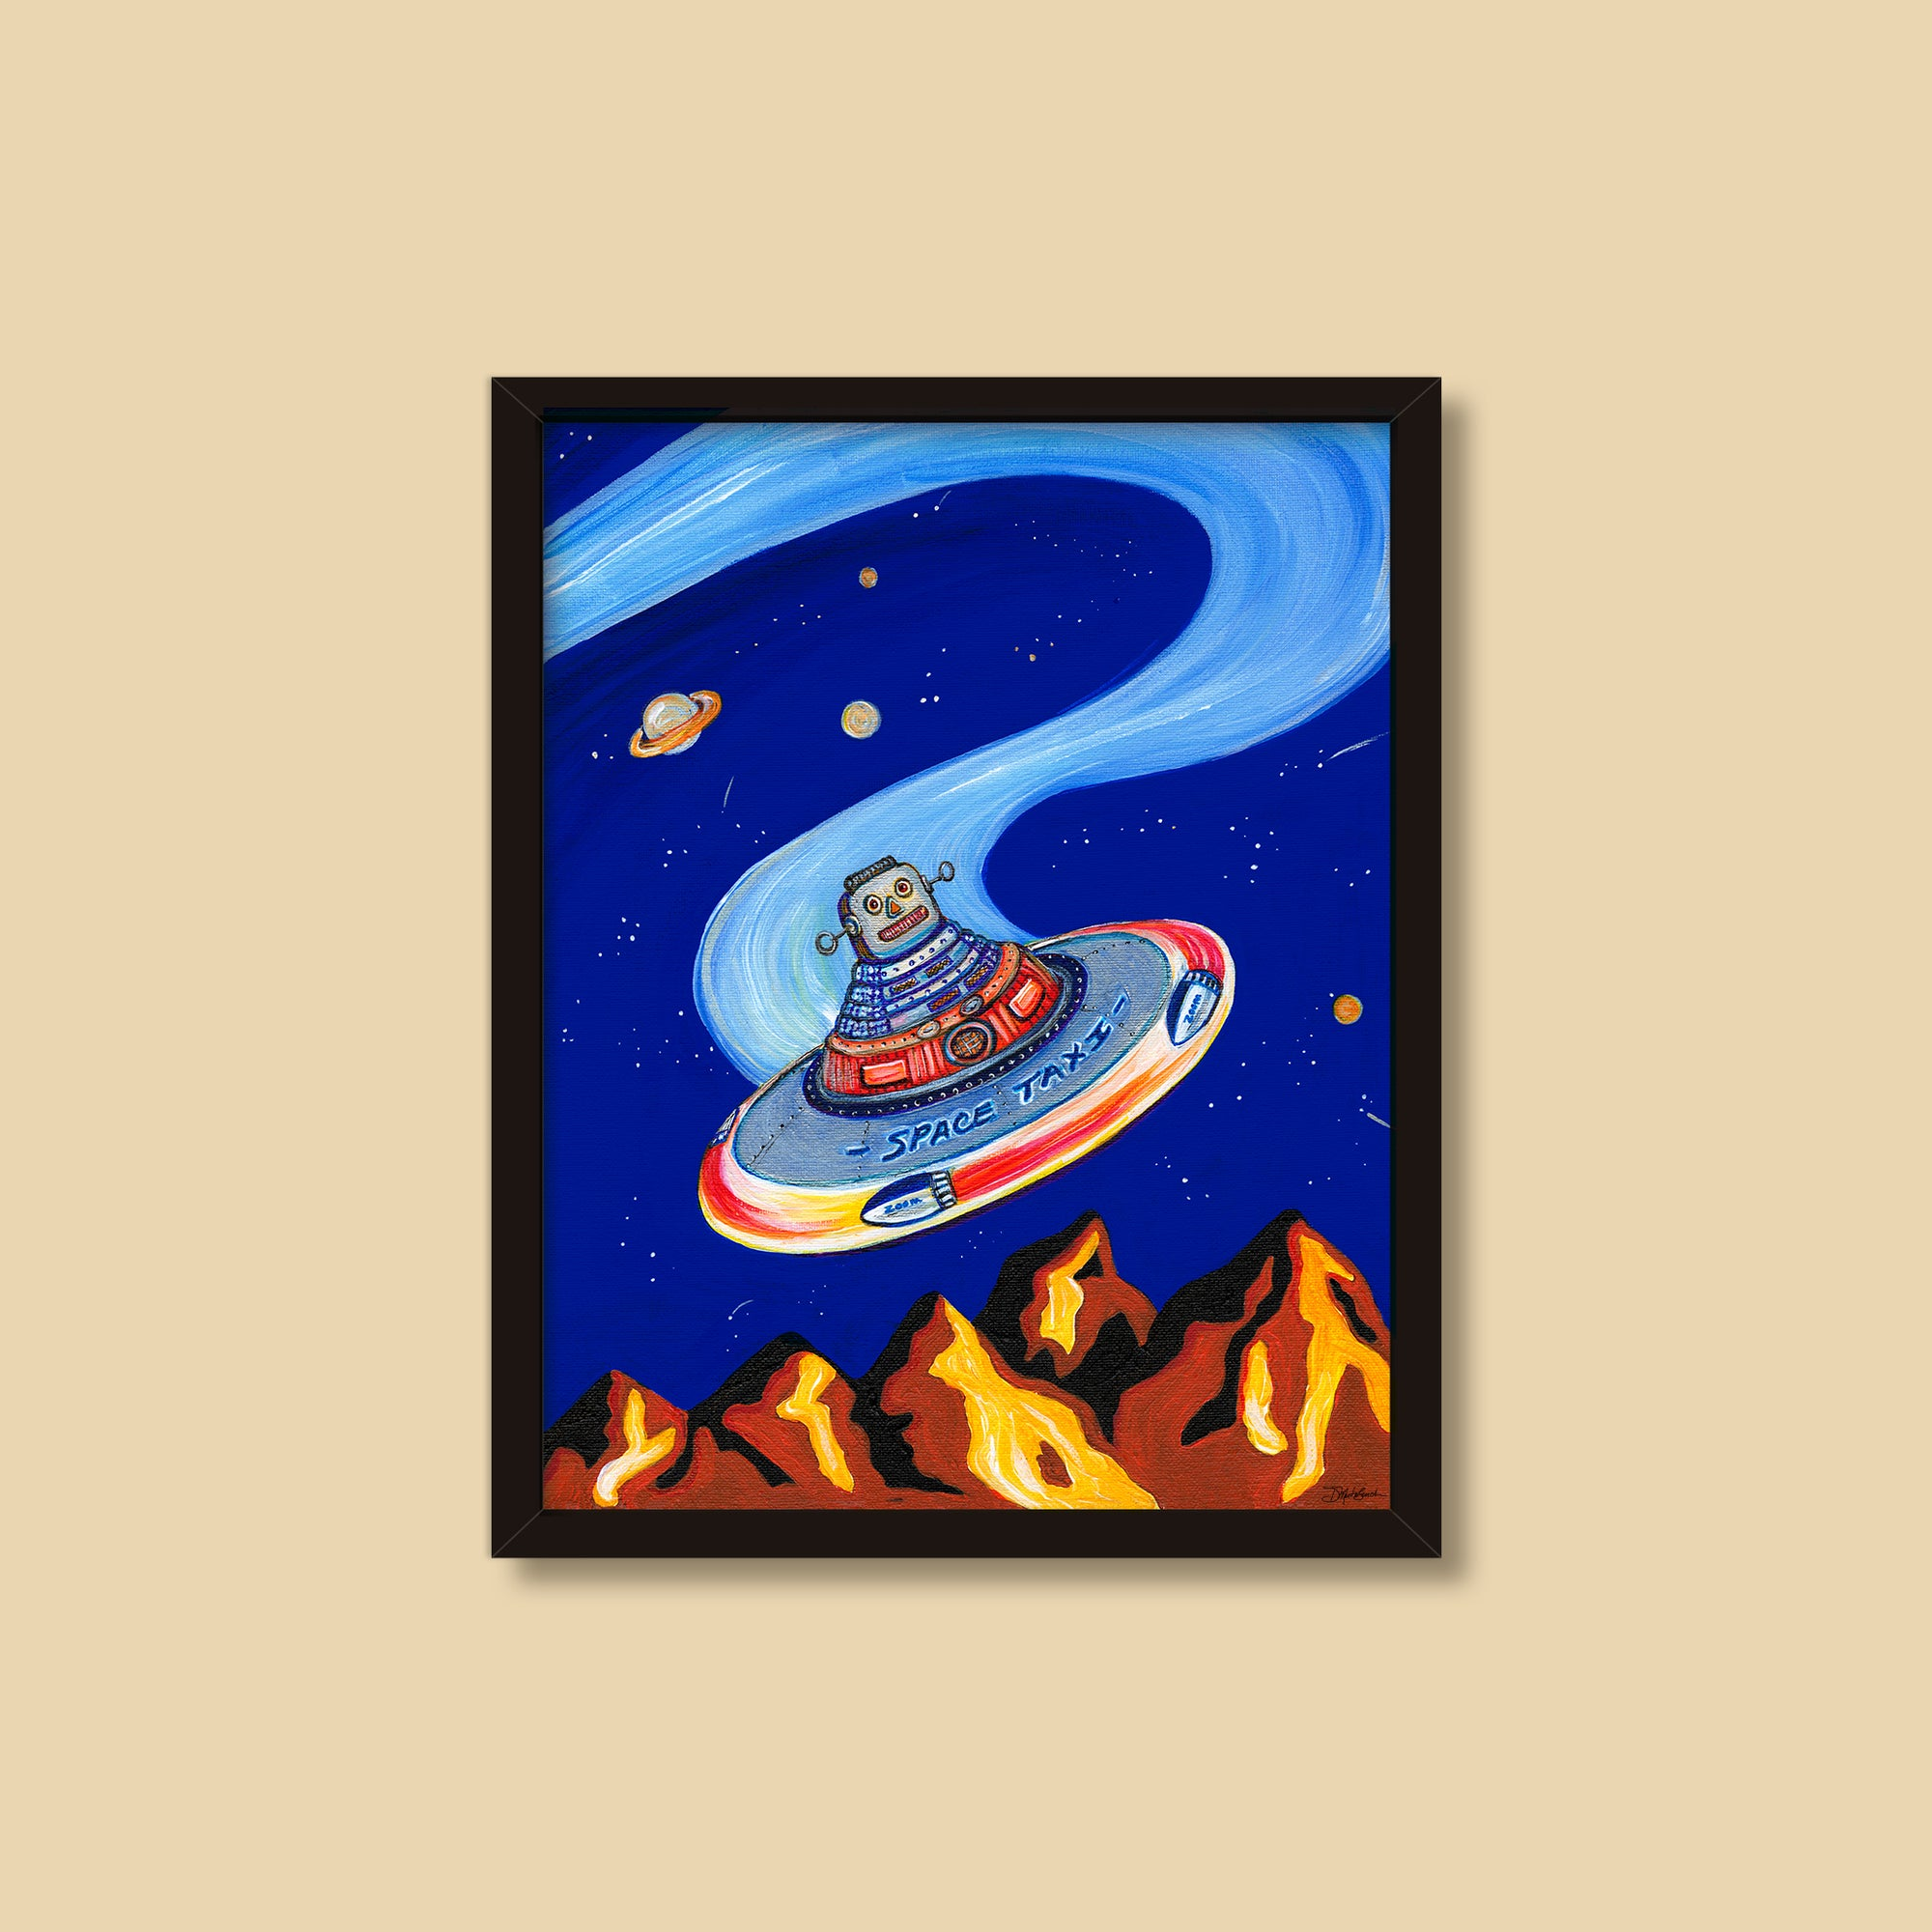 Space Taxi | Mixed Media Painting by Denise Marta-Burch